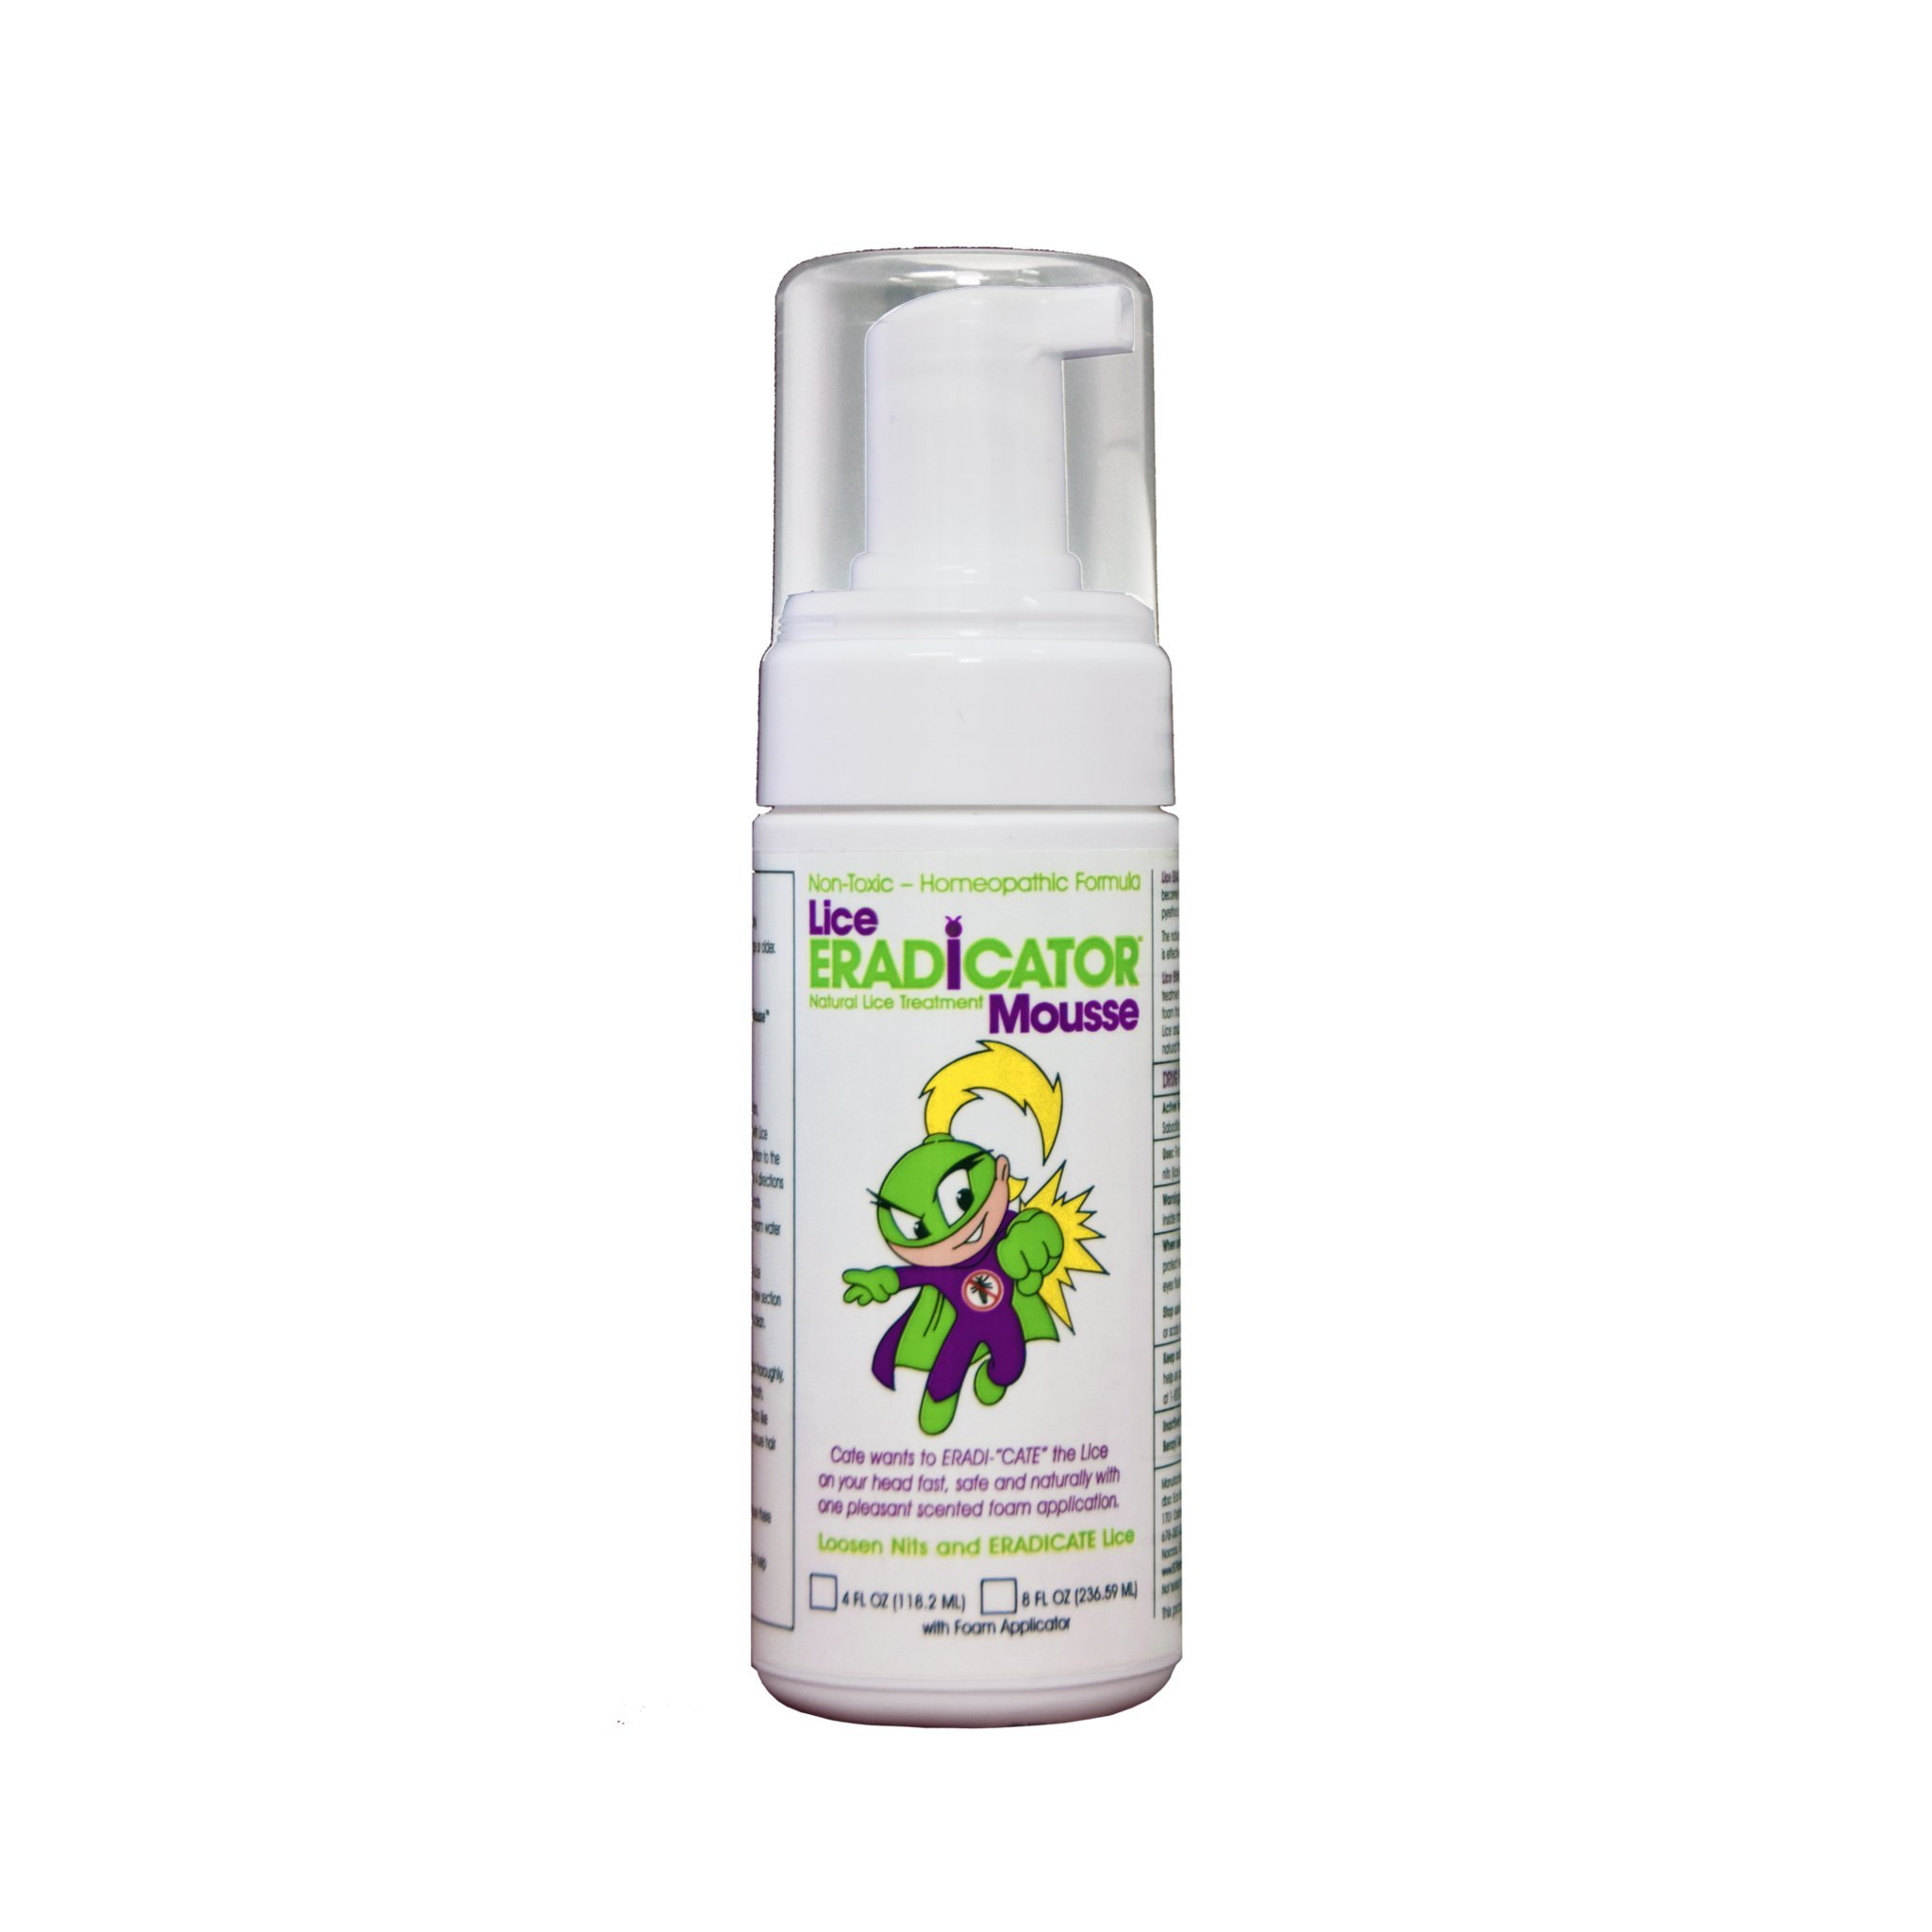 Lice ERADICATOR Foam Spray Mousse / Non-Toxic, Natural Lice Treatment, Peppermint Formula / 4 Ounce Bottle with Foam Applicator